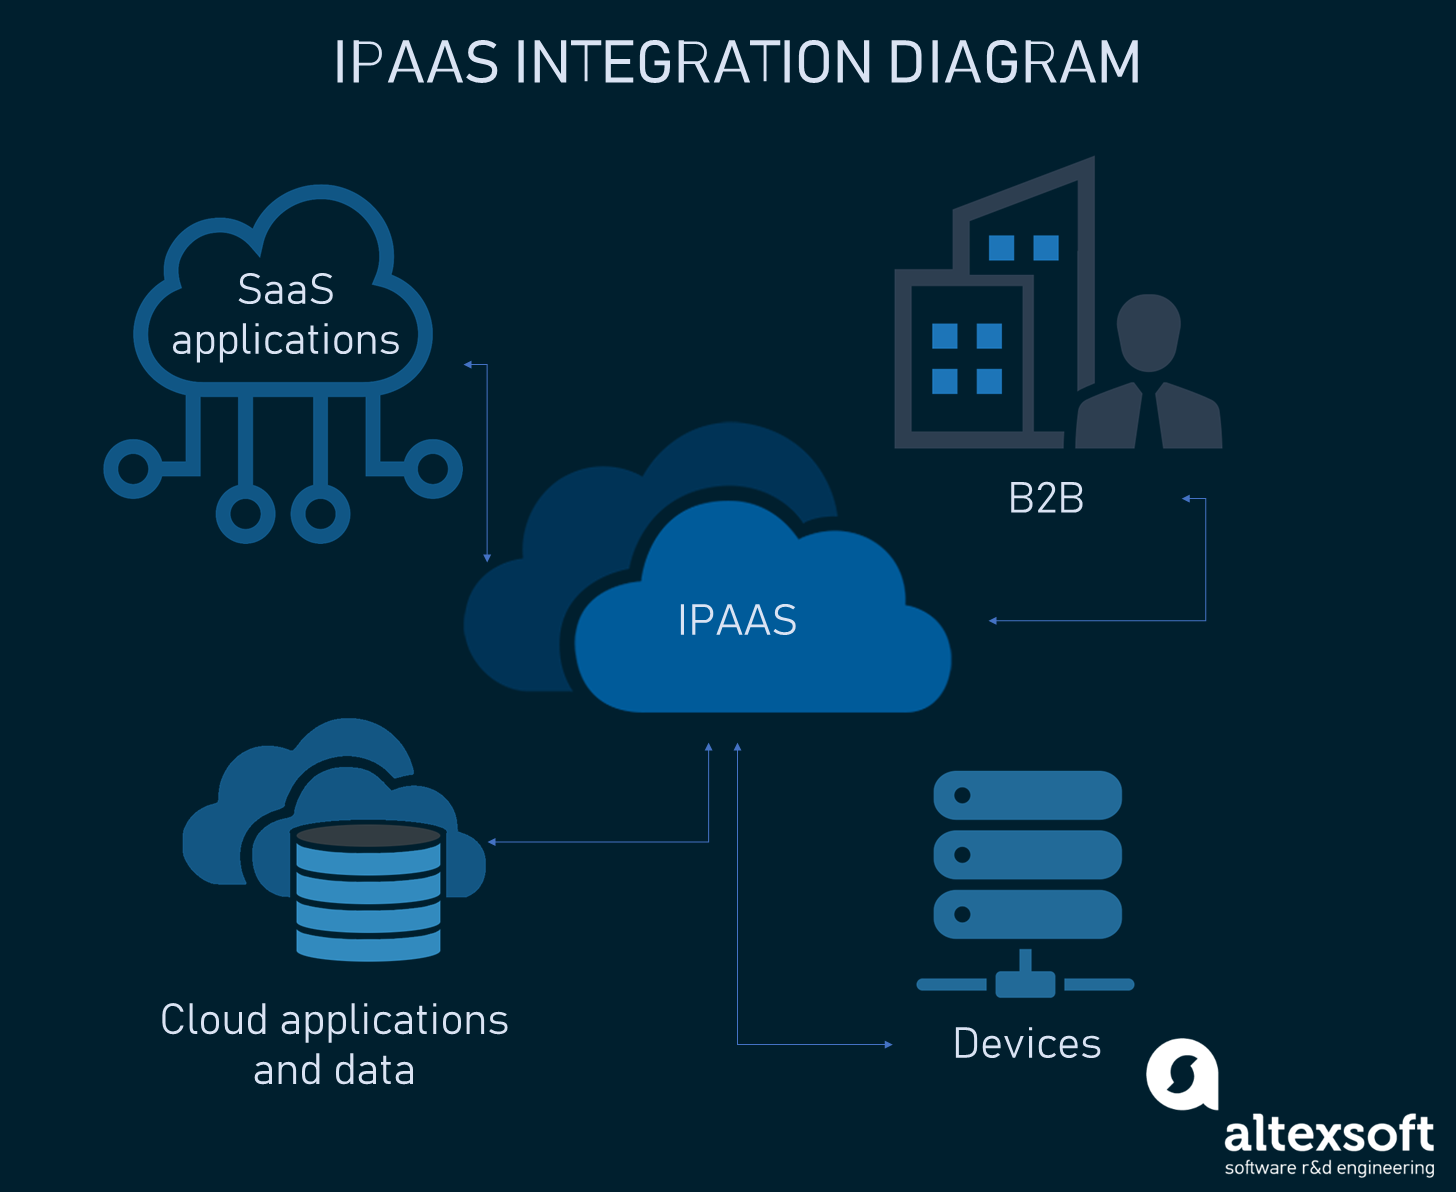 Simplified illustration of possible iPaaS connections